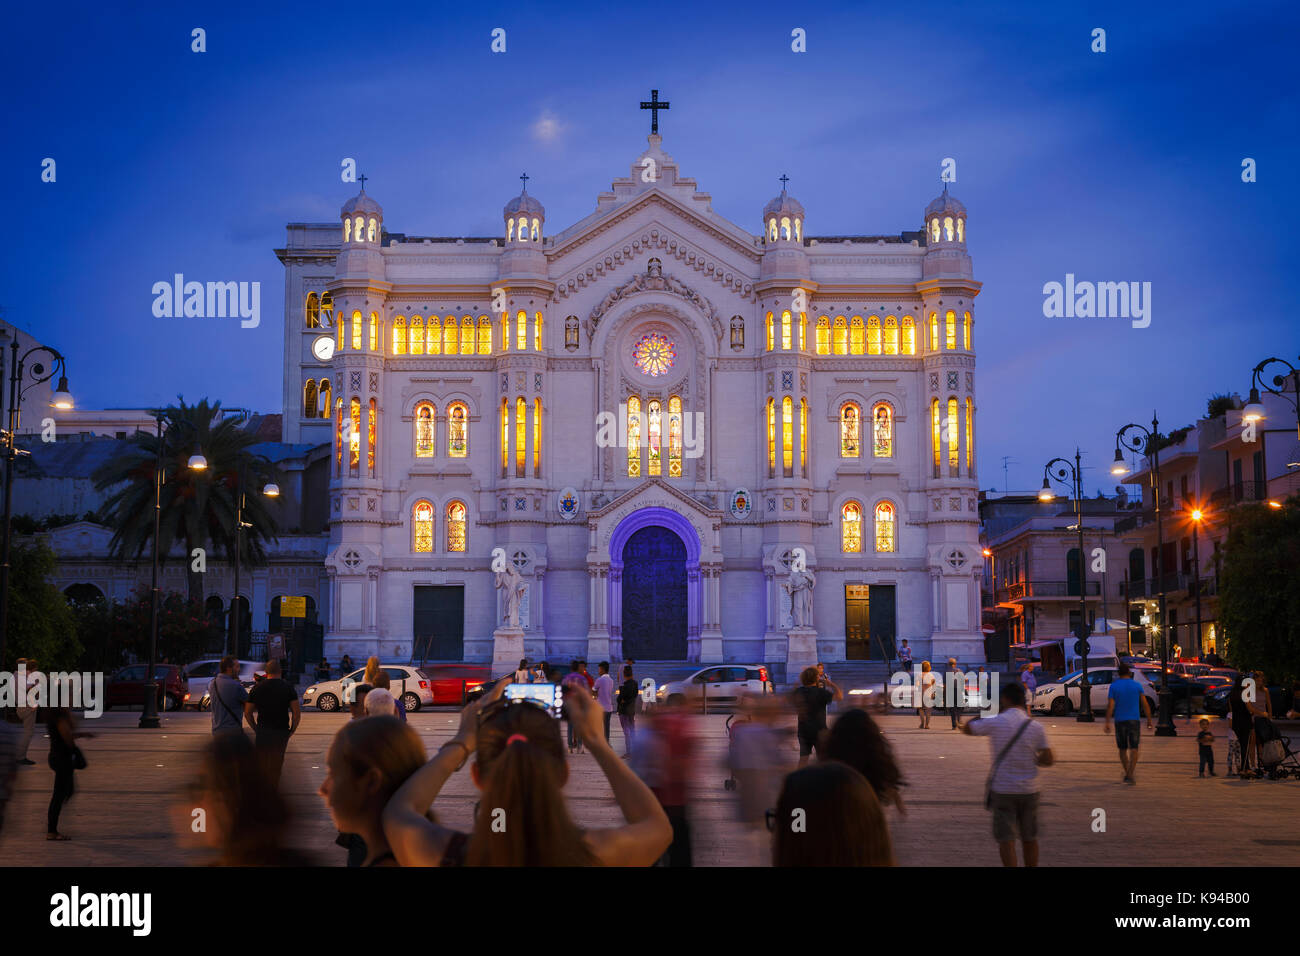 Reggio Calabria Cathedral (Duomo) at Night, Calabria, Italy. Stock Photo